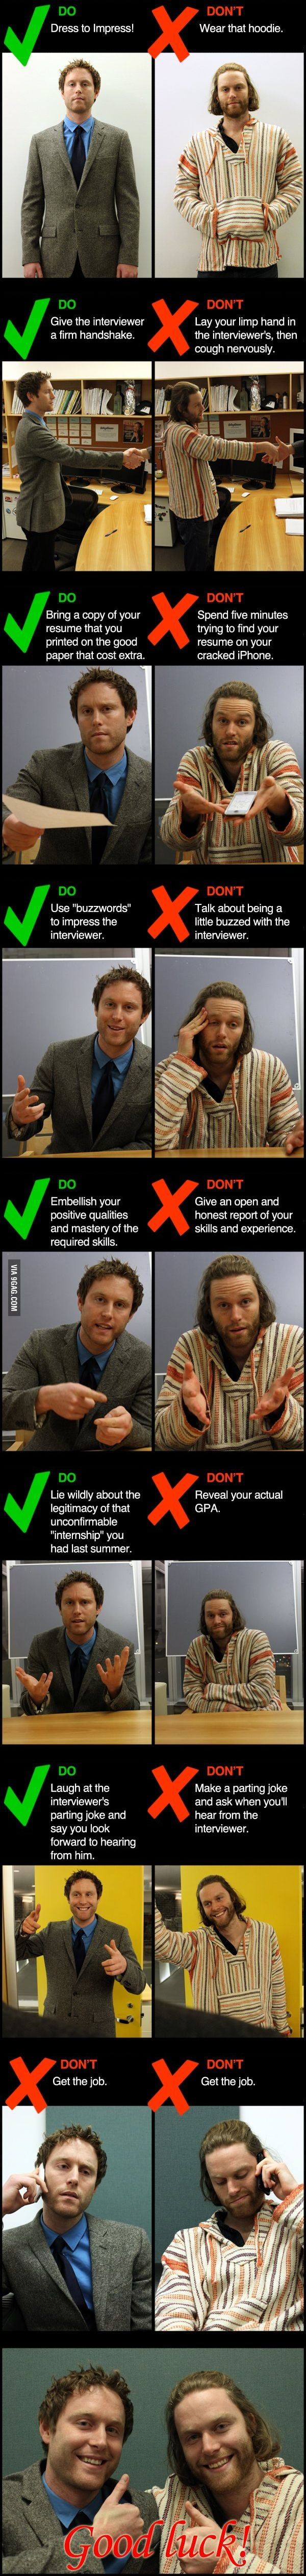 job interview dos and don ts 9gag job interview dos and don ts